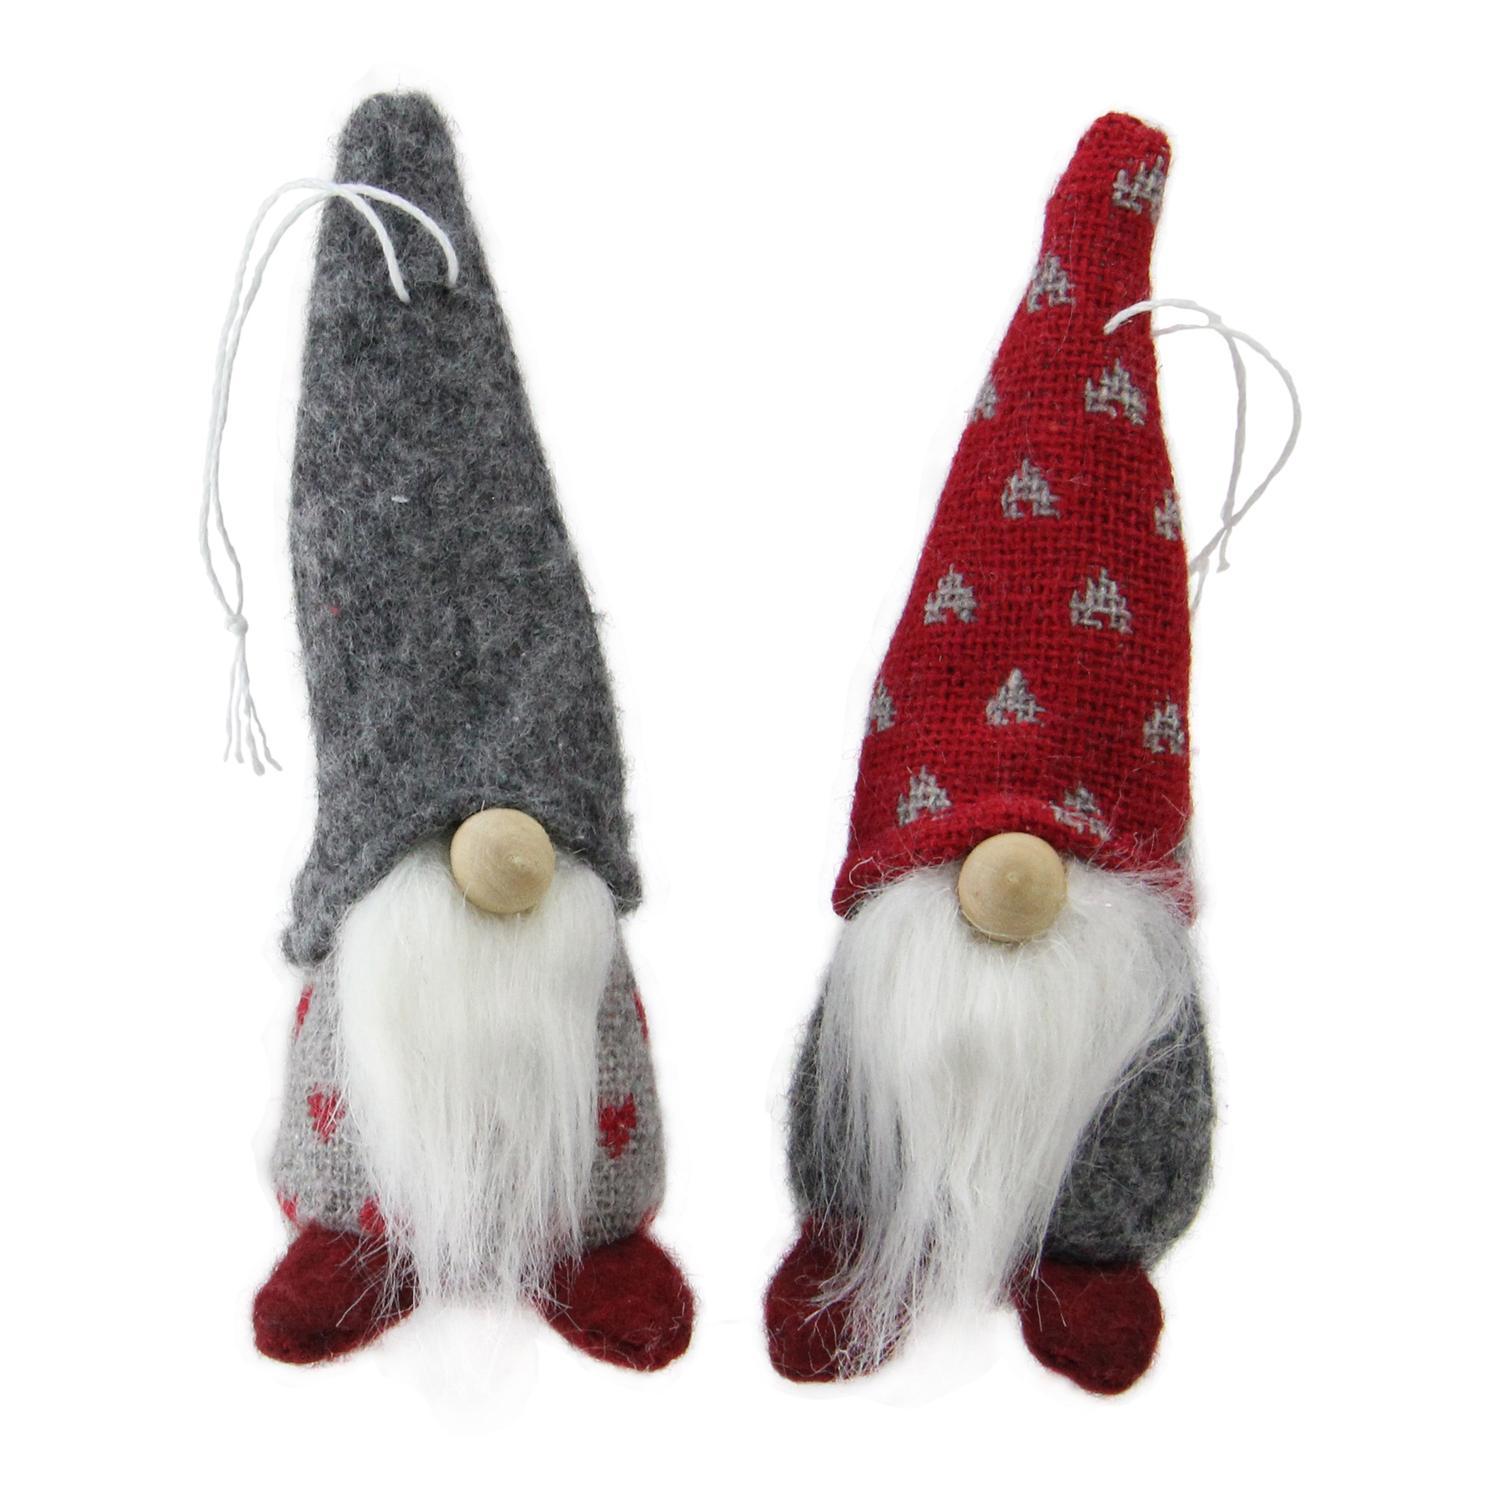 "NORTHLIGHT 2ct Santa Gnomes Christmas Ornament Set 4.25"" - Gray/Red"